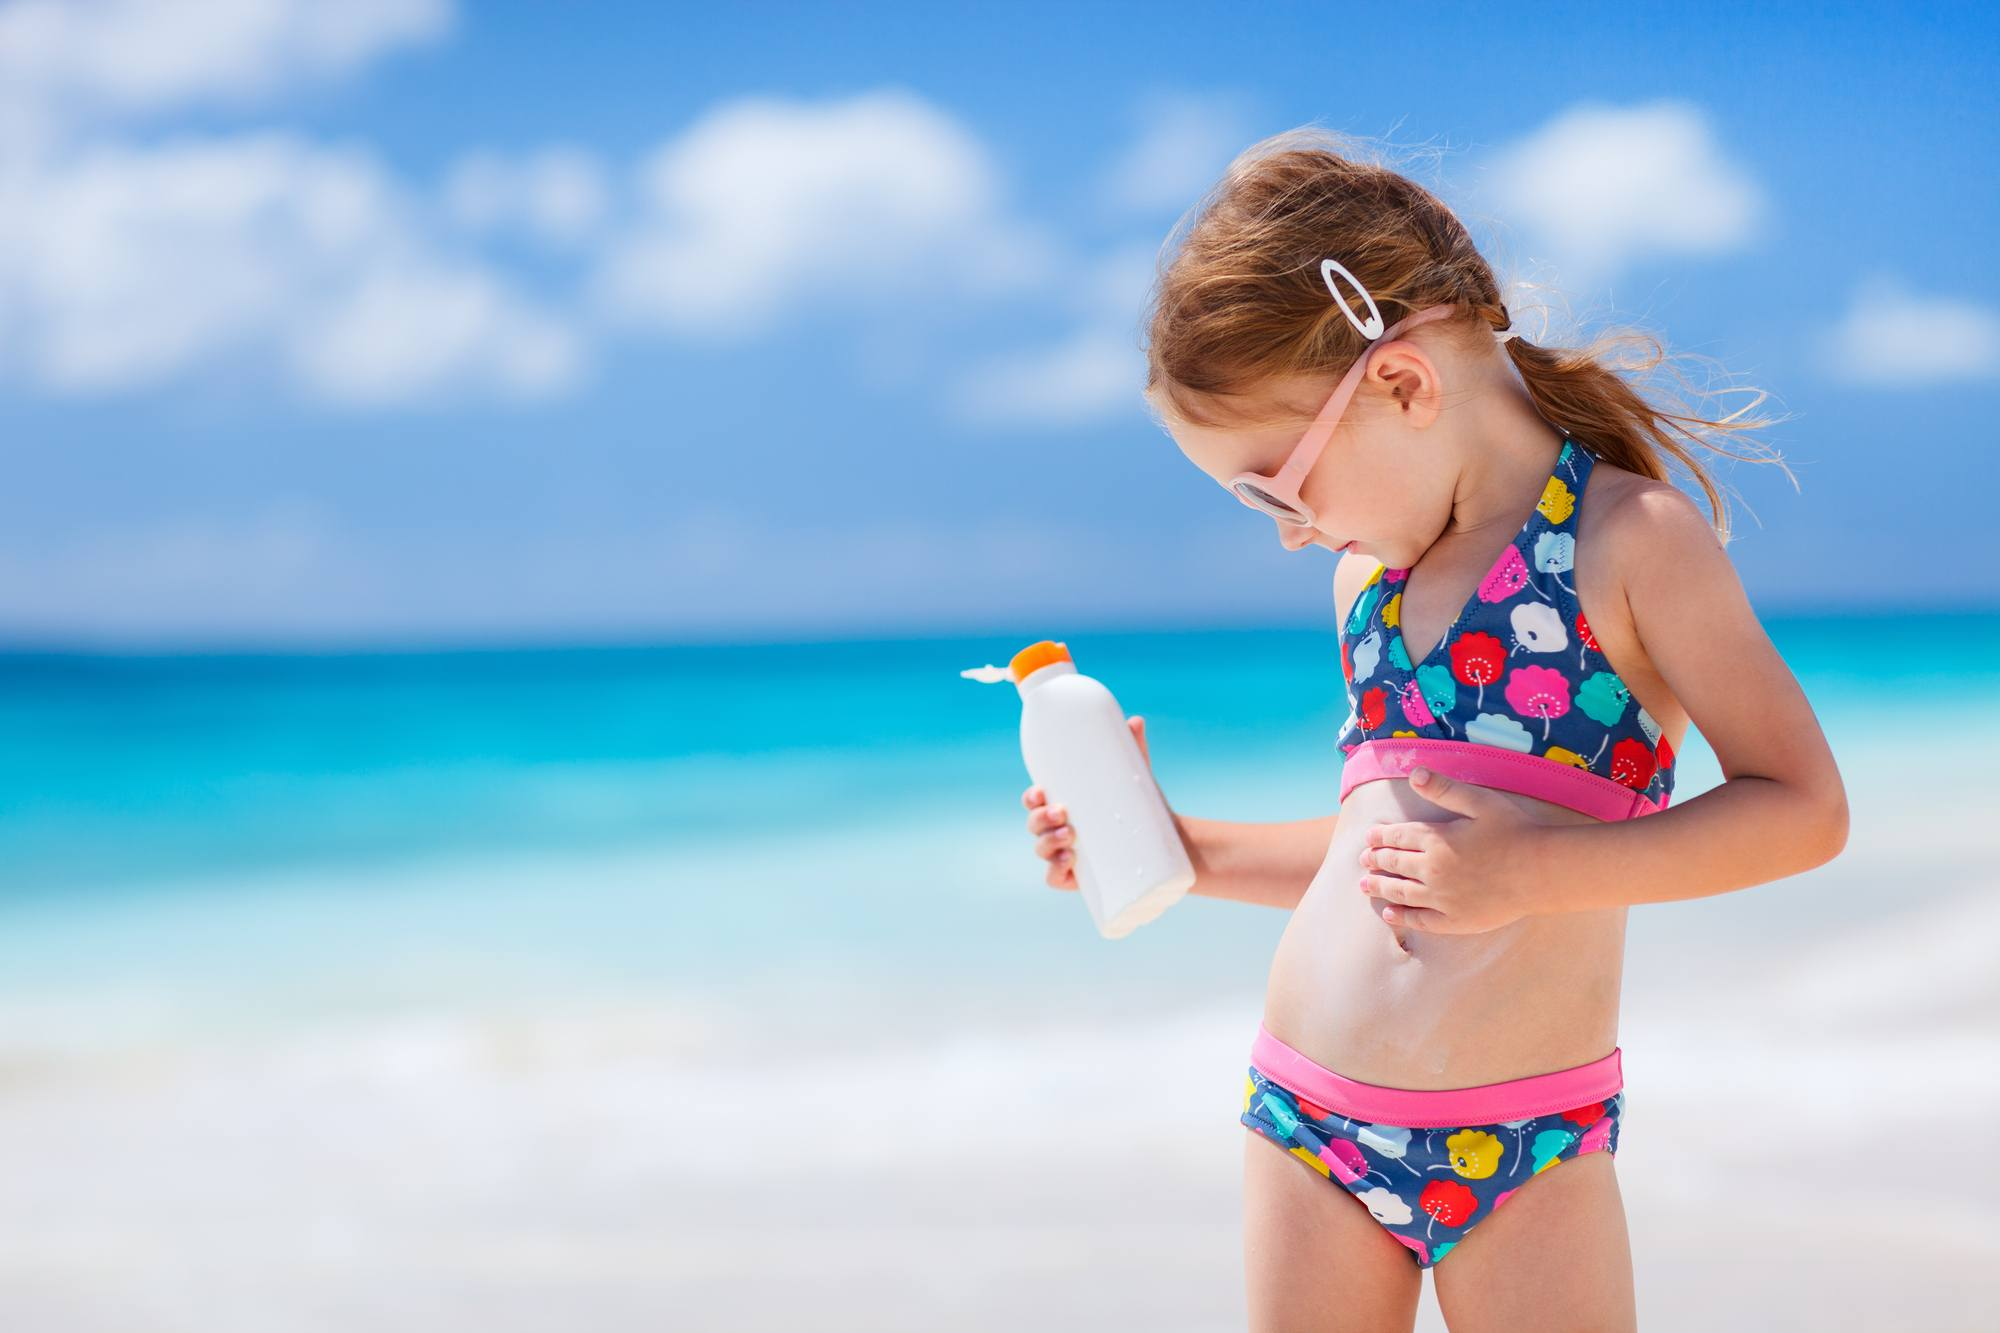 Apply sunscreen throughout the day at the beach